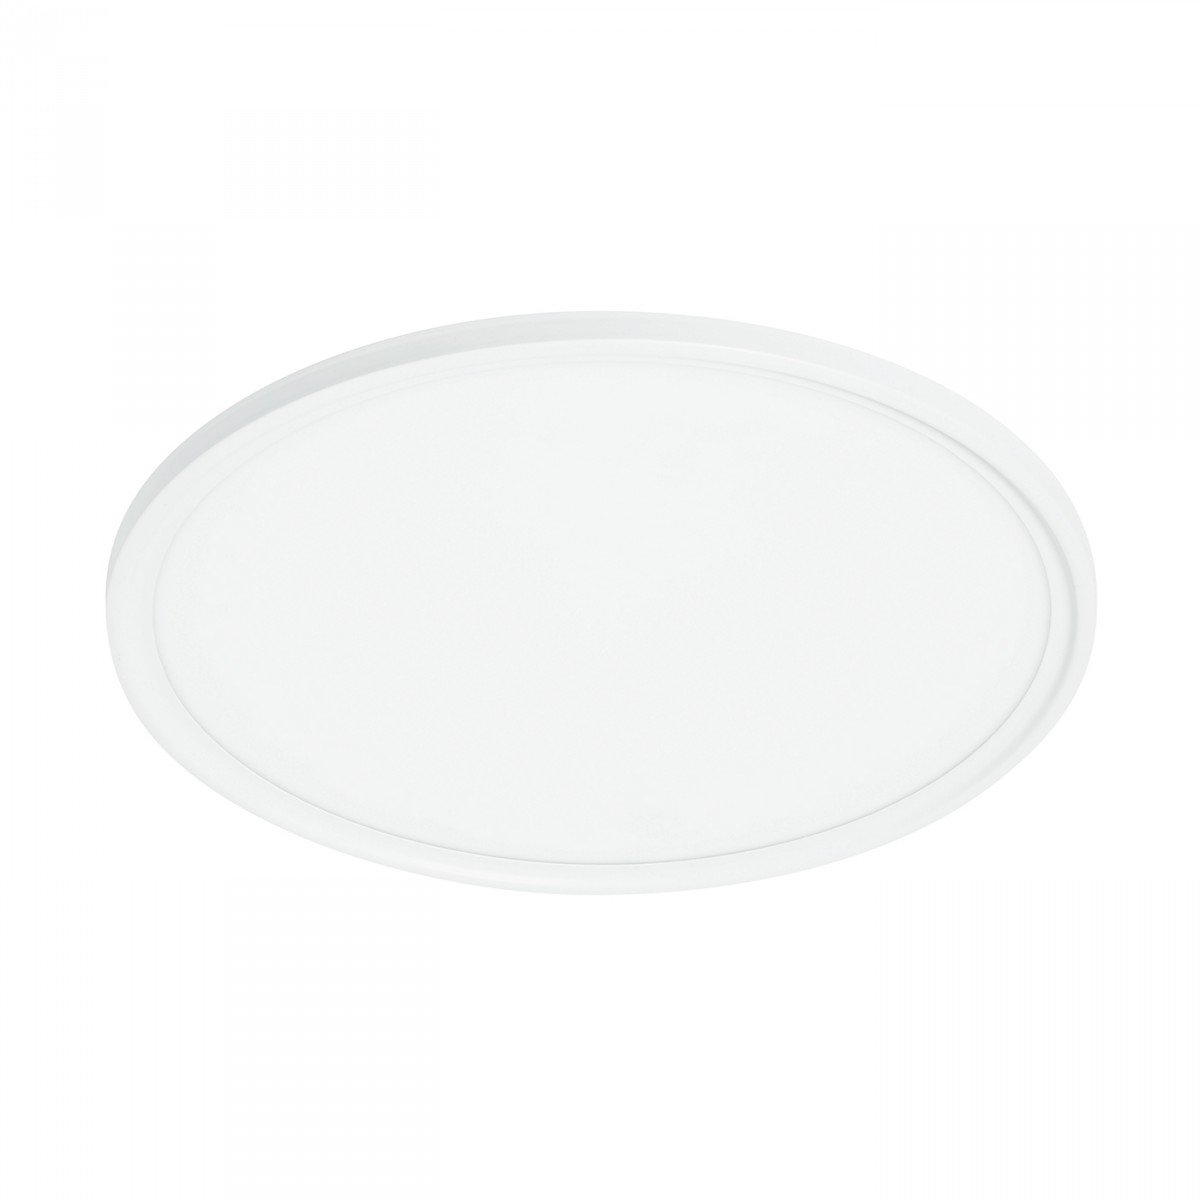 Volea ceiling lamp redond white 36W LED